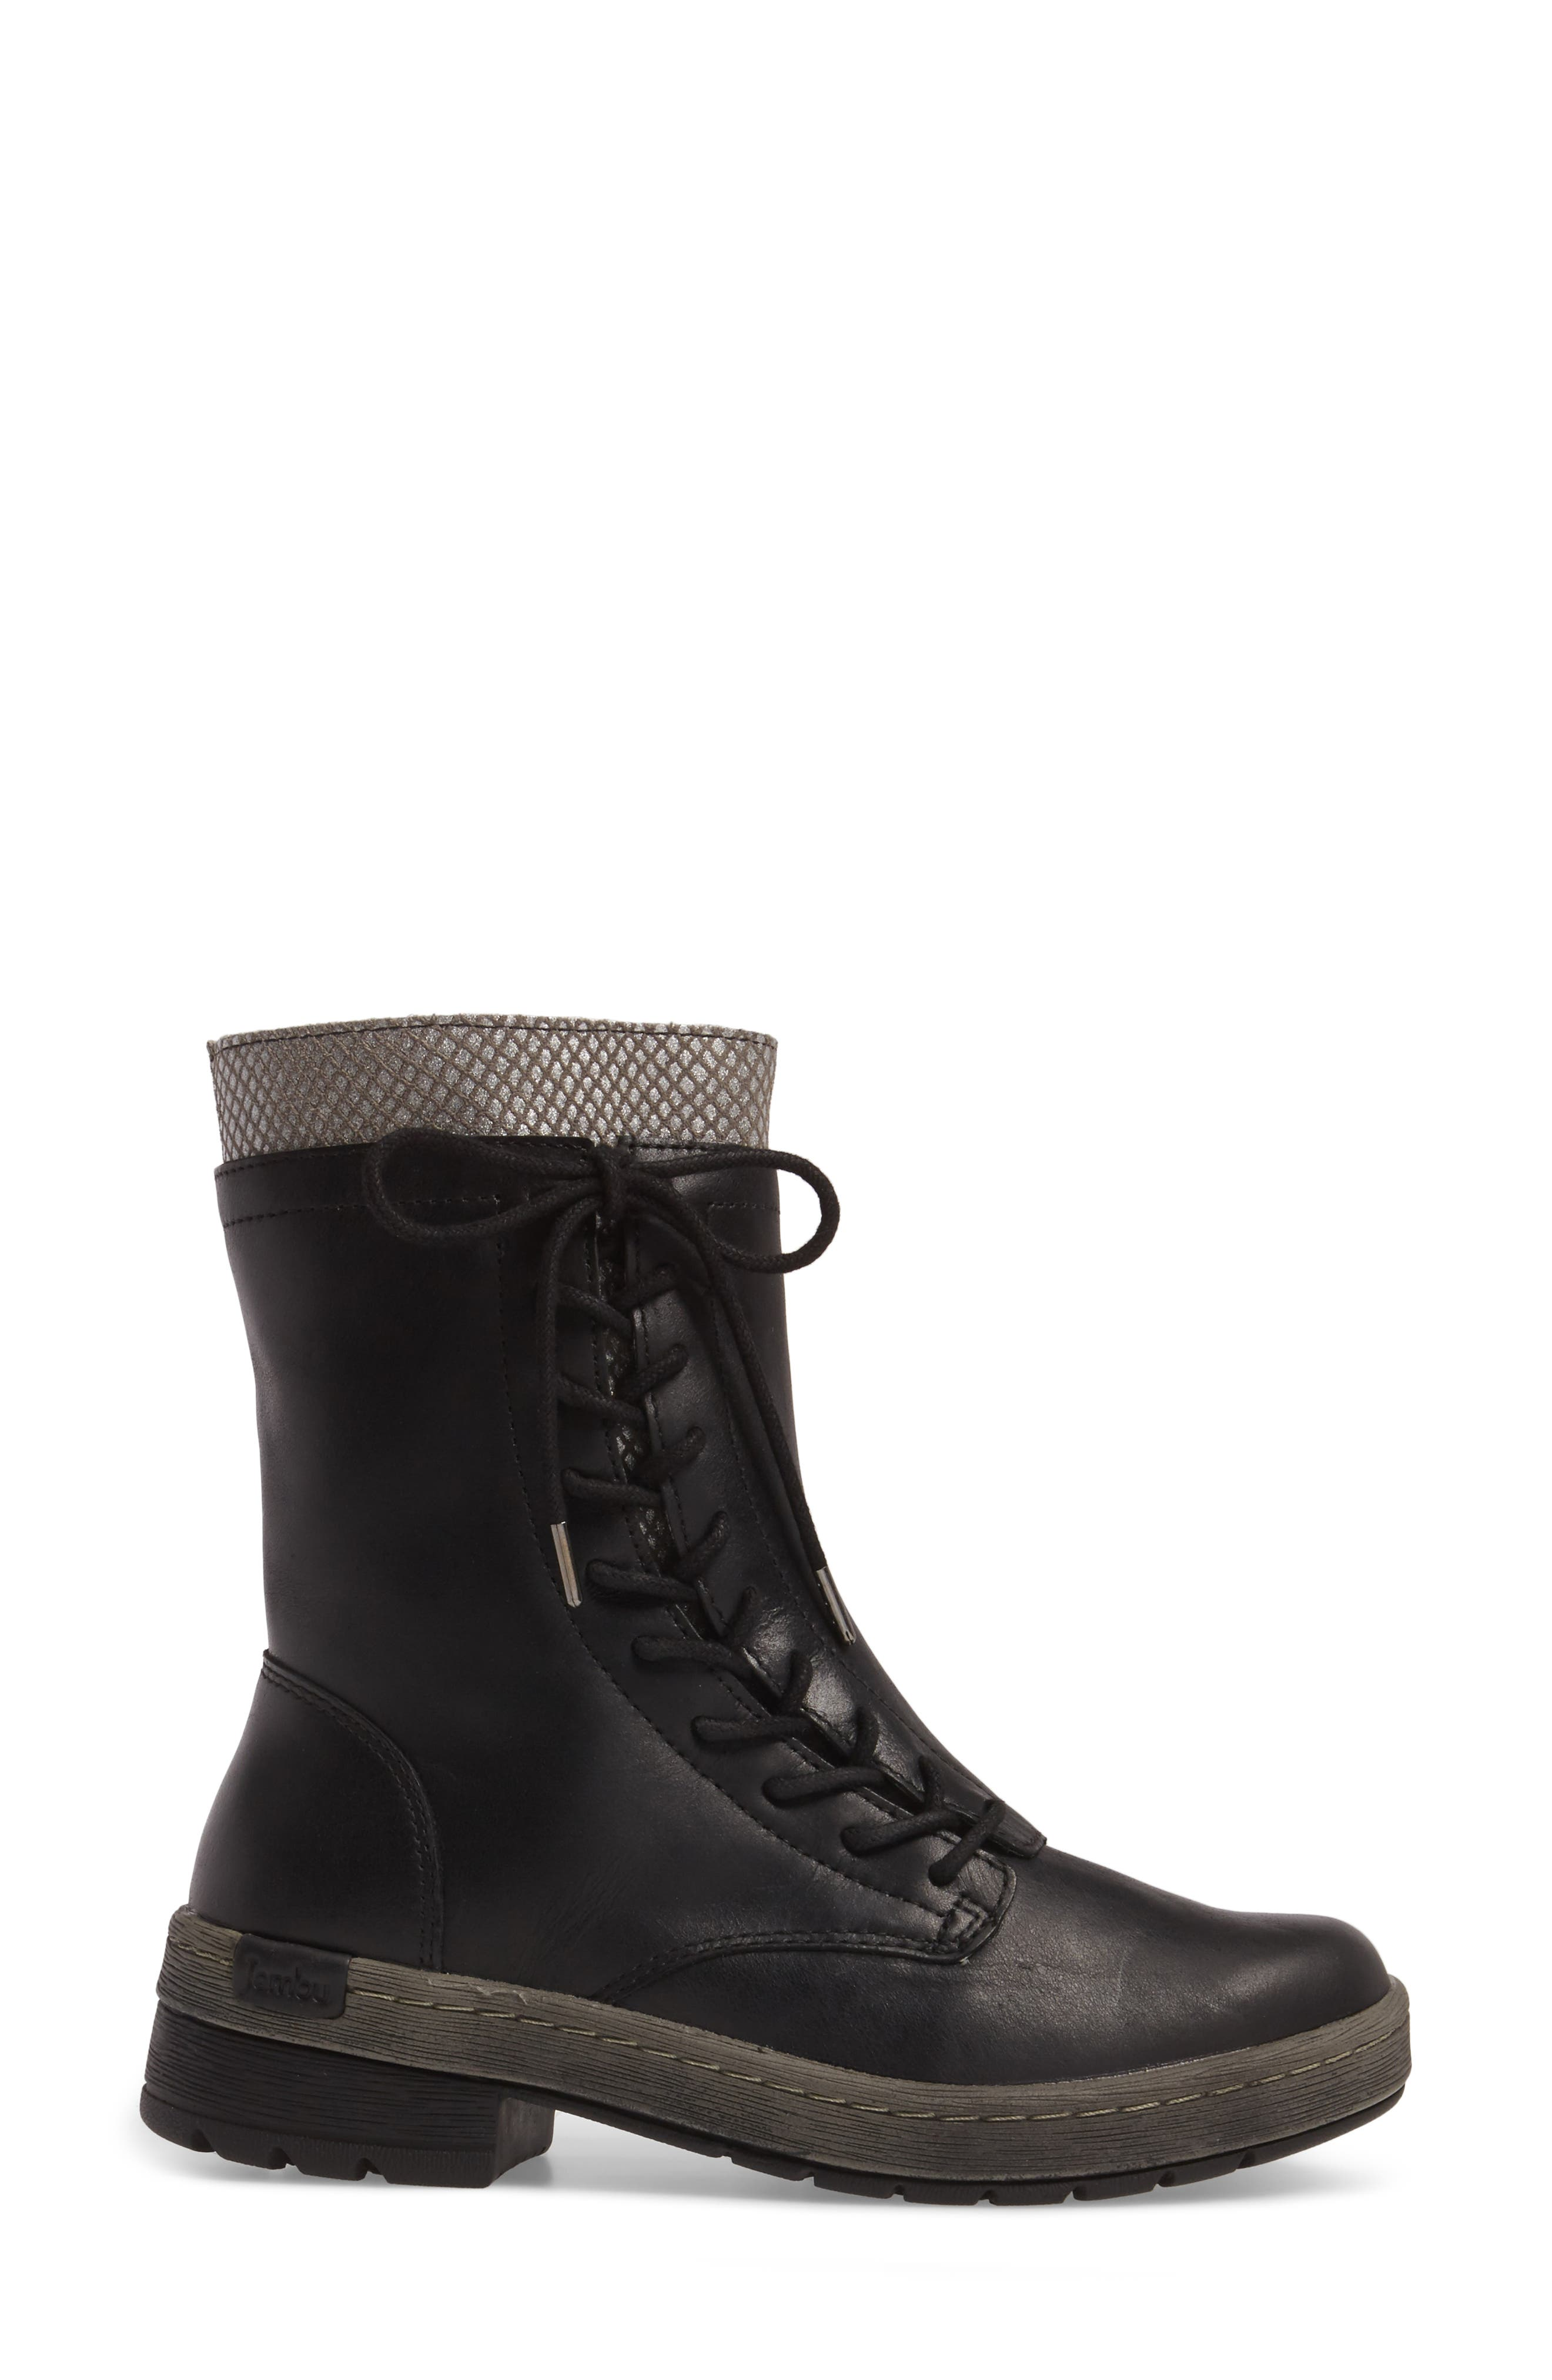 Chestnut Lace-Up Water Resistant Boot,                             Alternate thumbnail 3, color,                             001